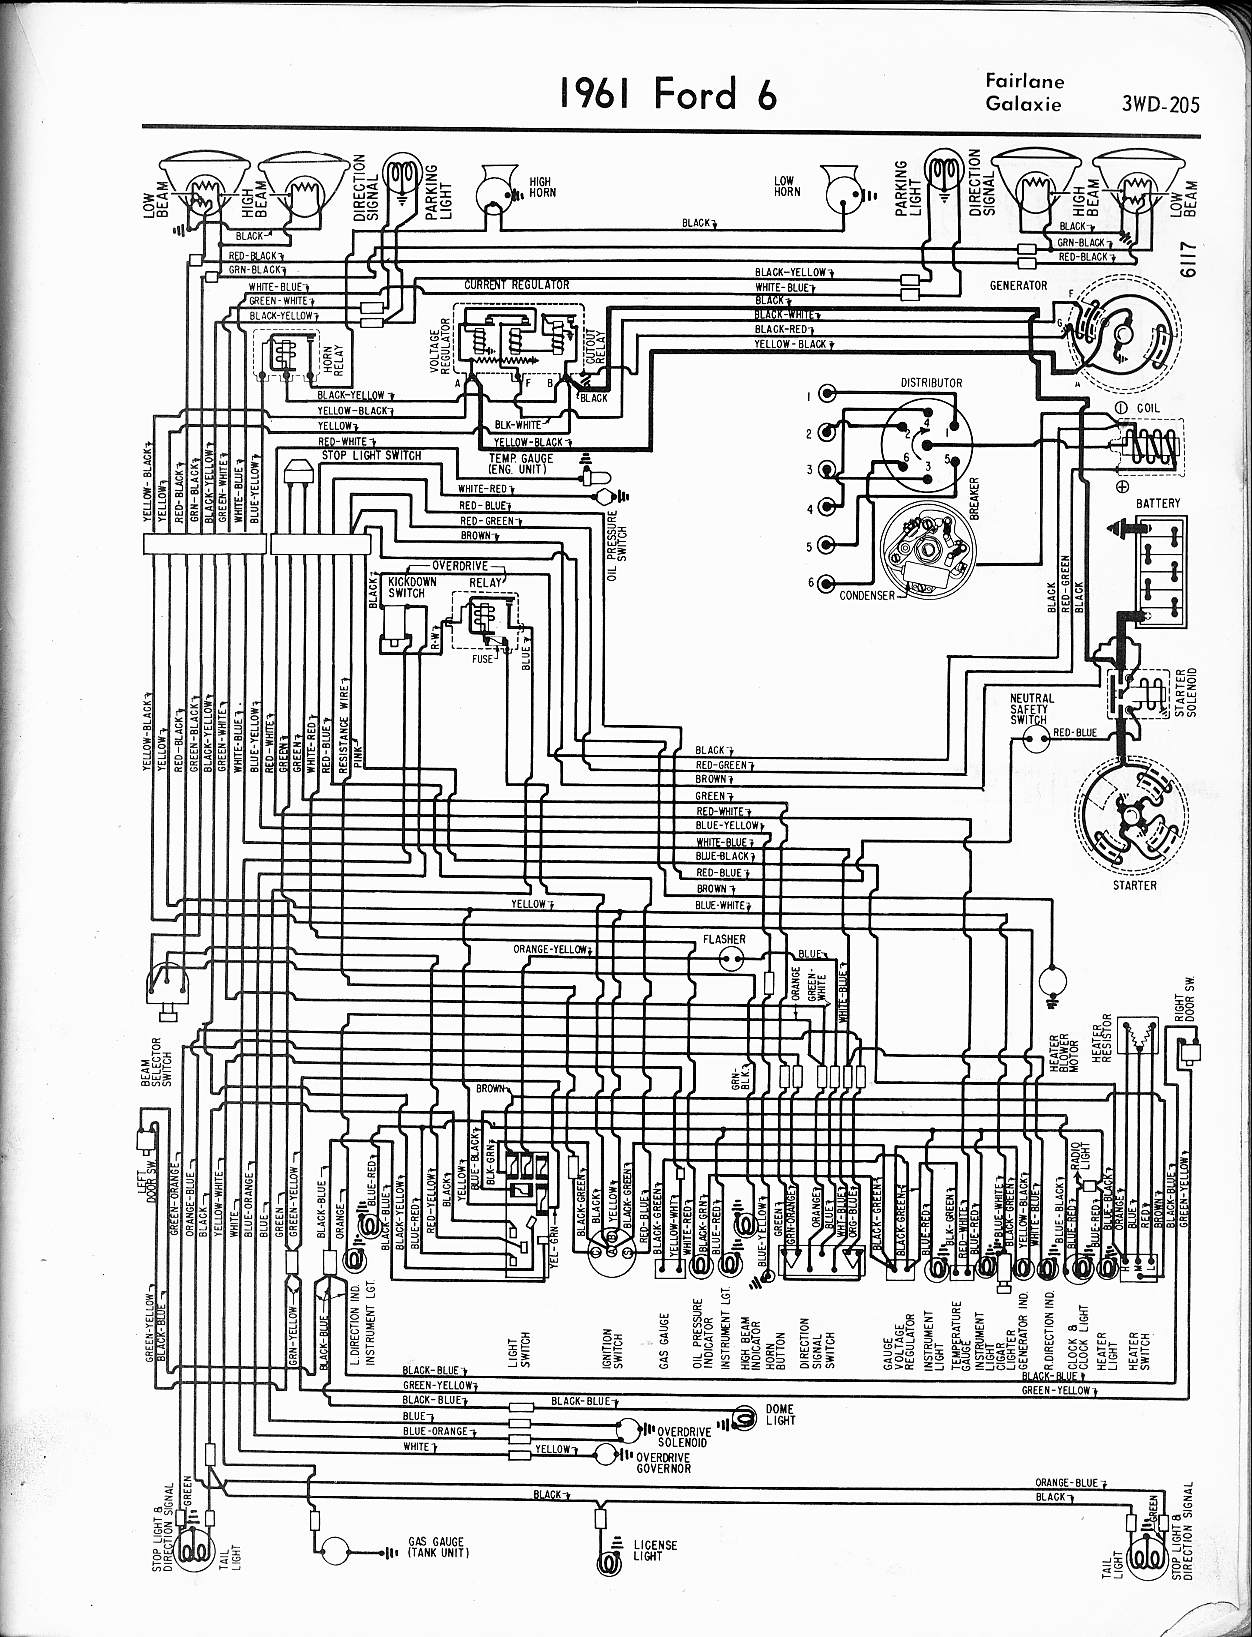 MWire5765 205 wiring diagram model a ford the wiring diagram readingrat net Ford E 350 Wiring Diagrams at honlapkeszites.co